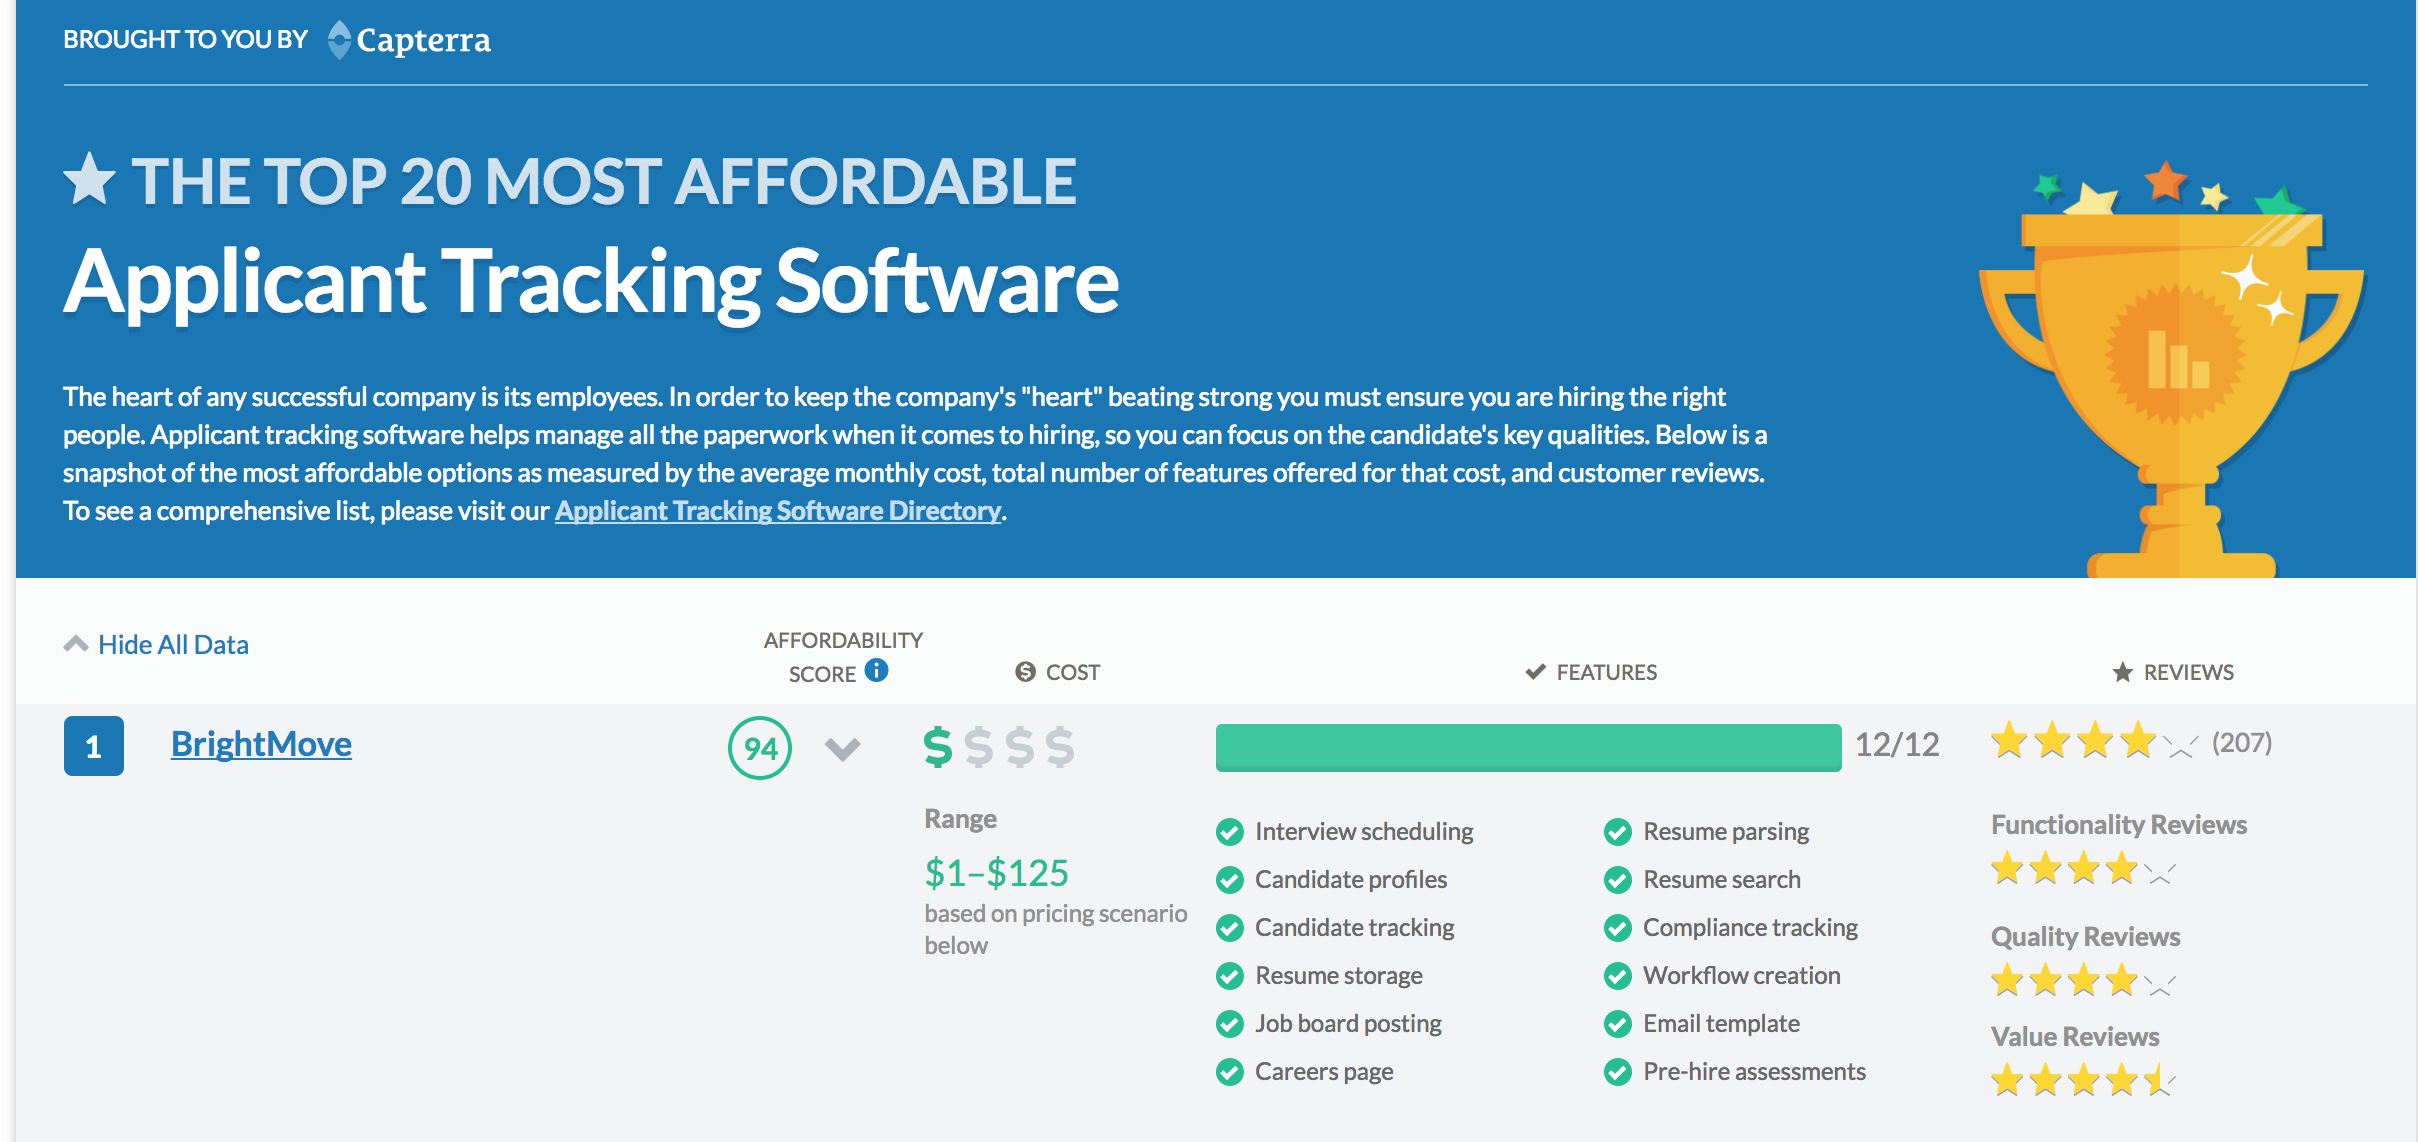 Capterra Ranks BrightMove Most Affordable Applicant Tracking Software